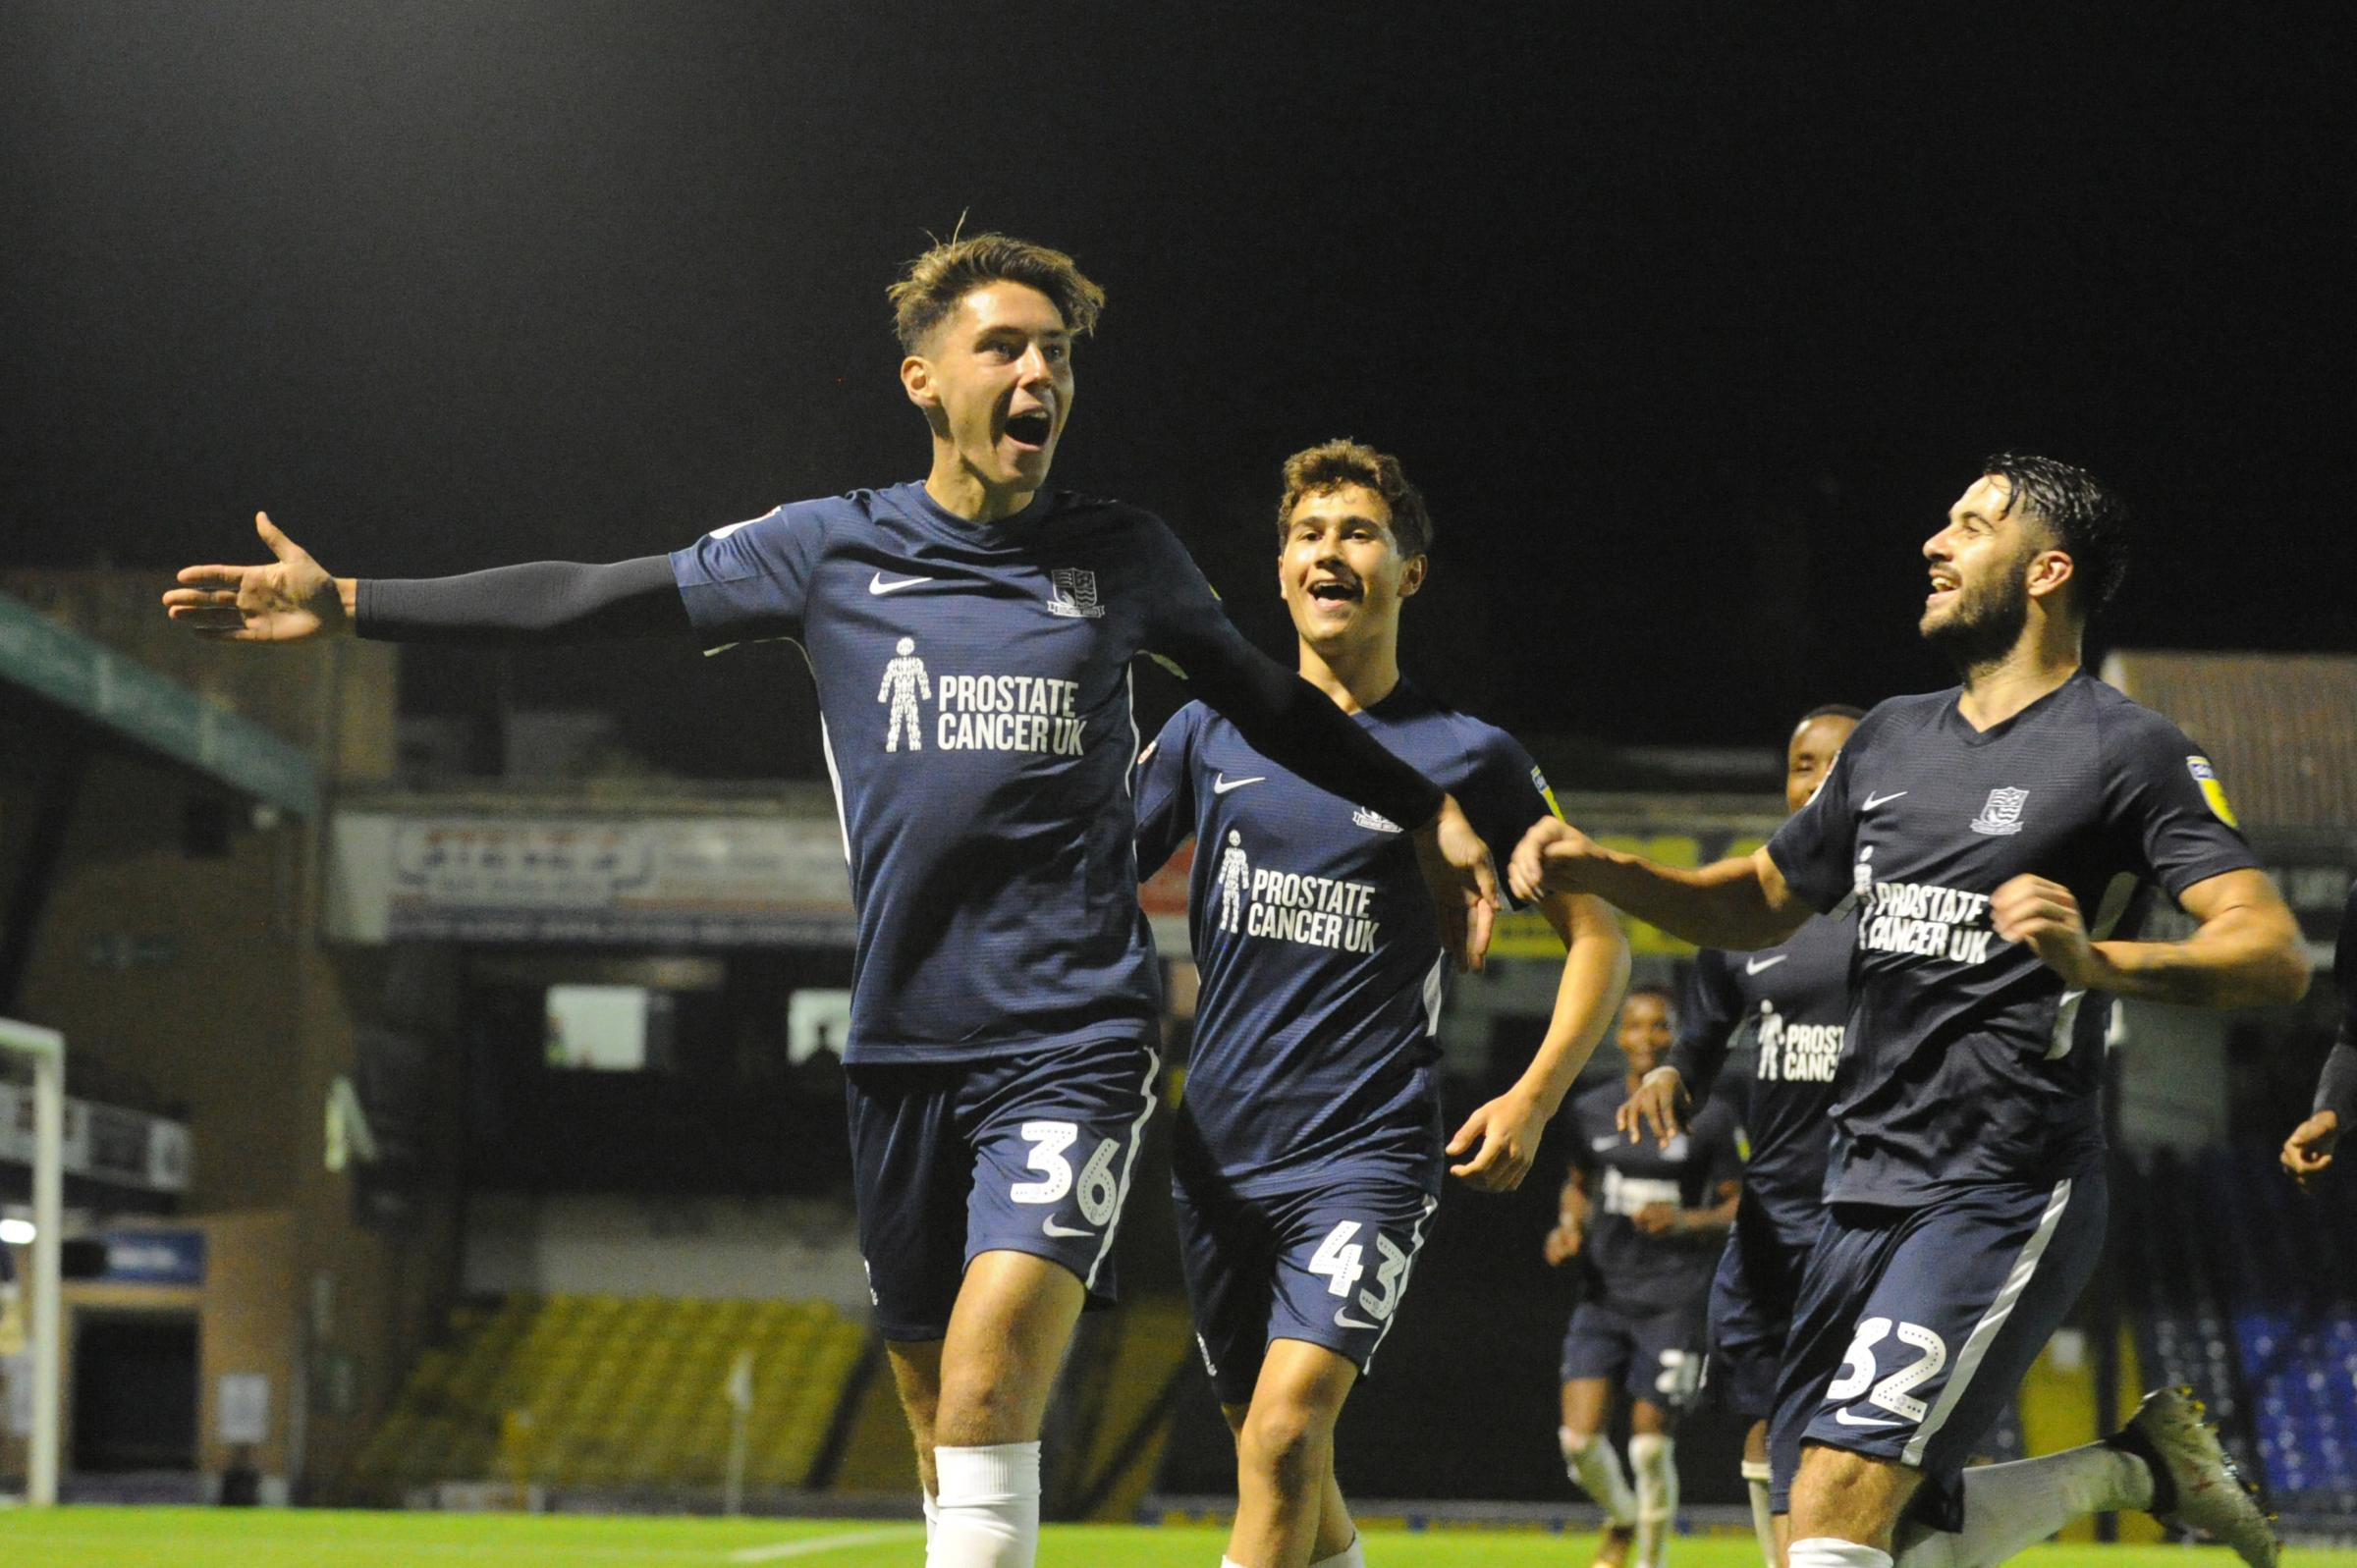 Making a good impression - Shrimpers youngster Isaac Hutchinson